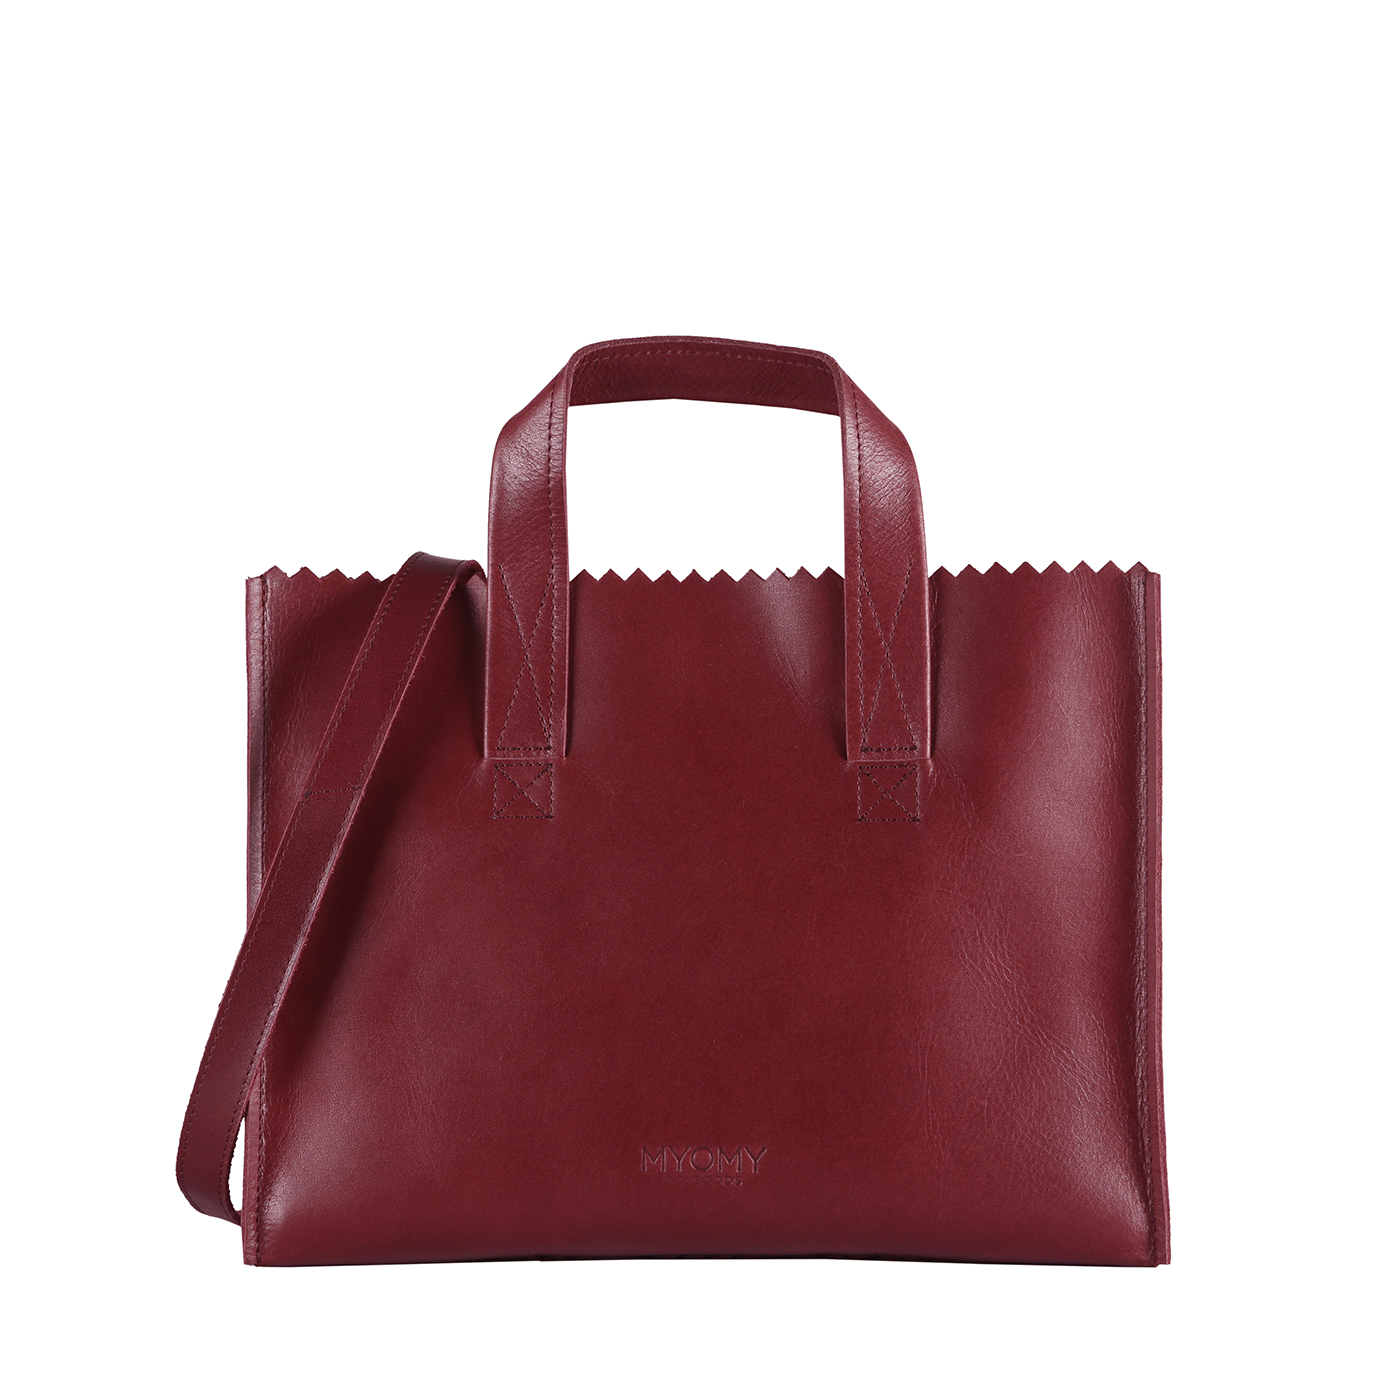 MY PAPER BAG Handbag cross-body - hunter waxy burgundy